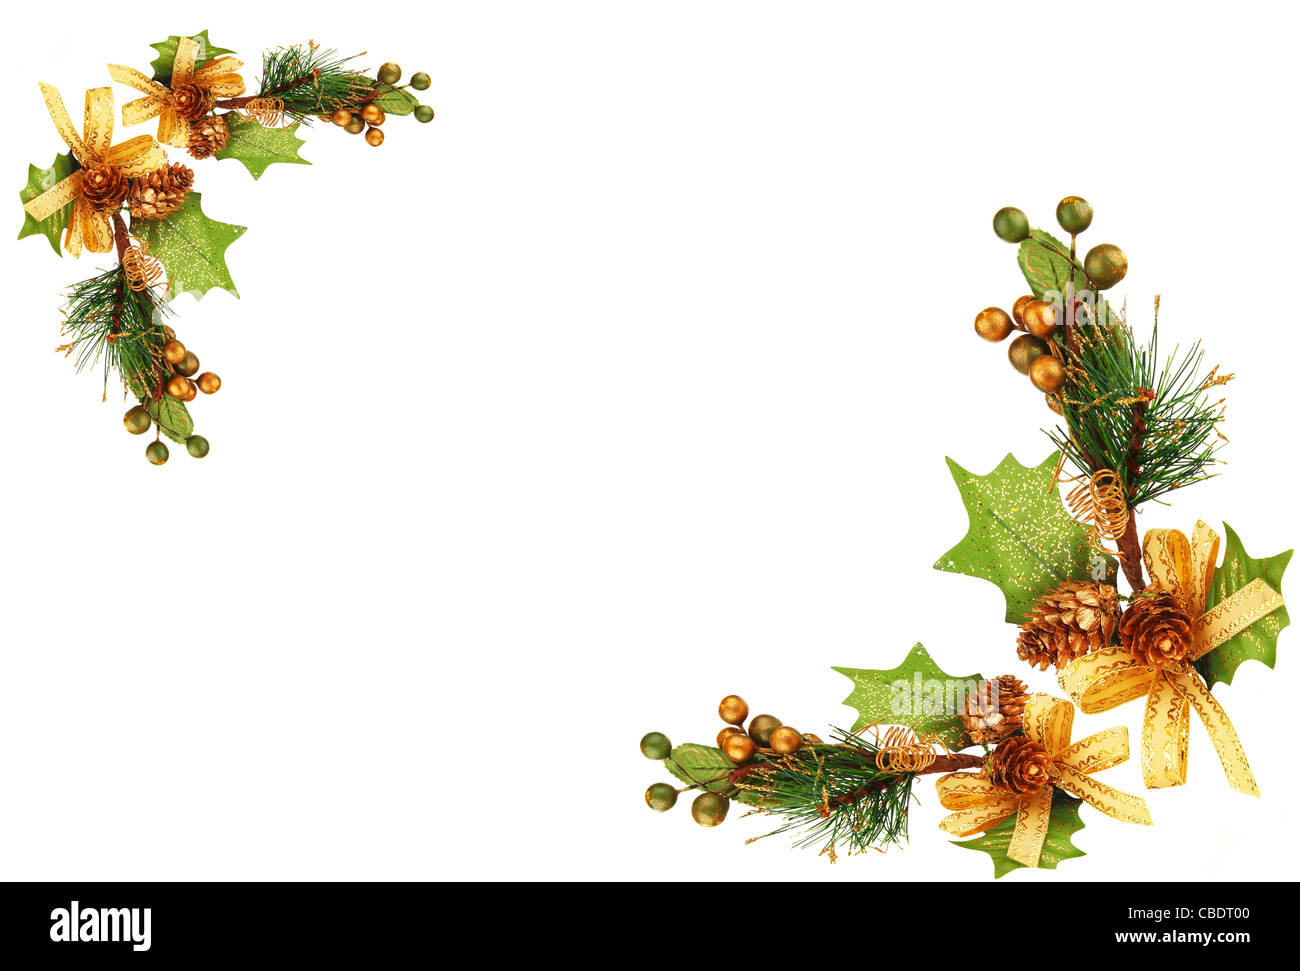 Holiday frame border with Christmas tree branch ornament as winter decoration isolated on white background - Stock Image